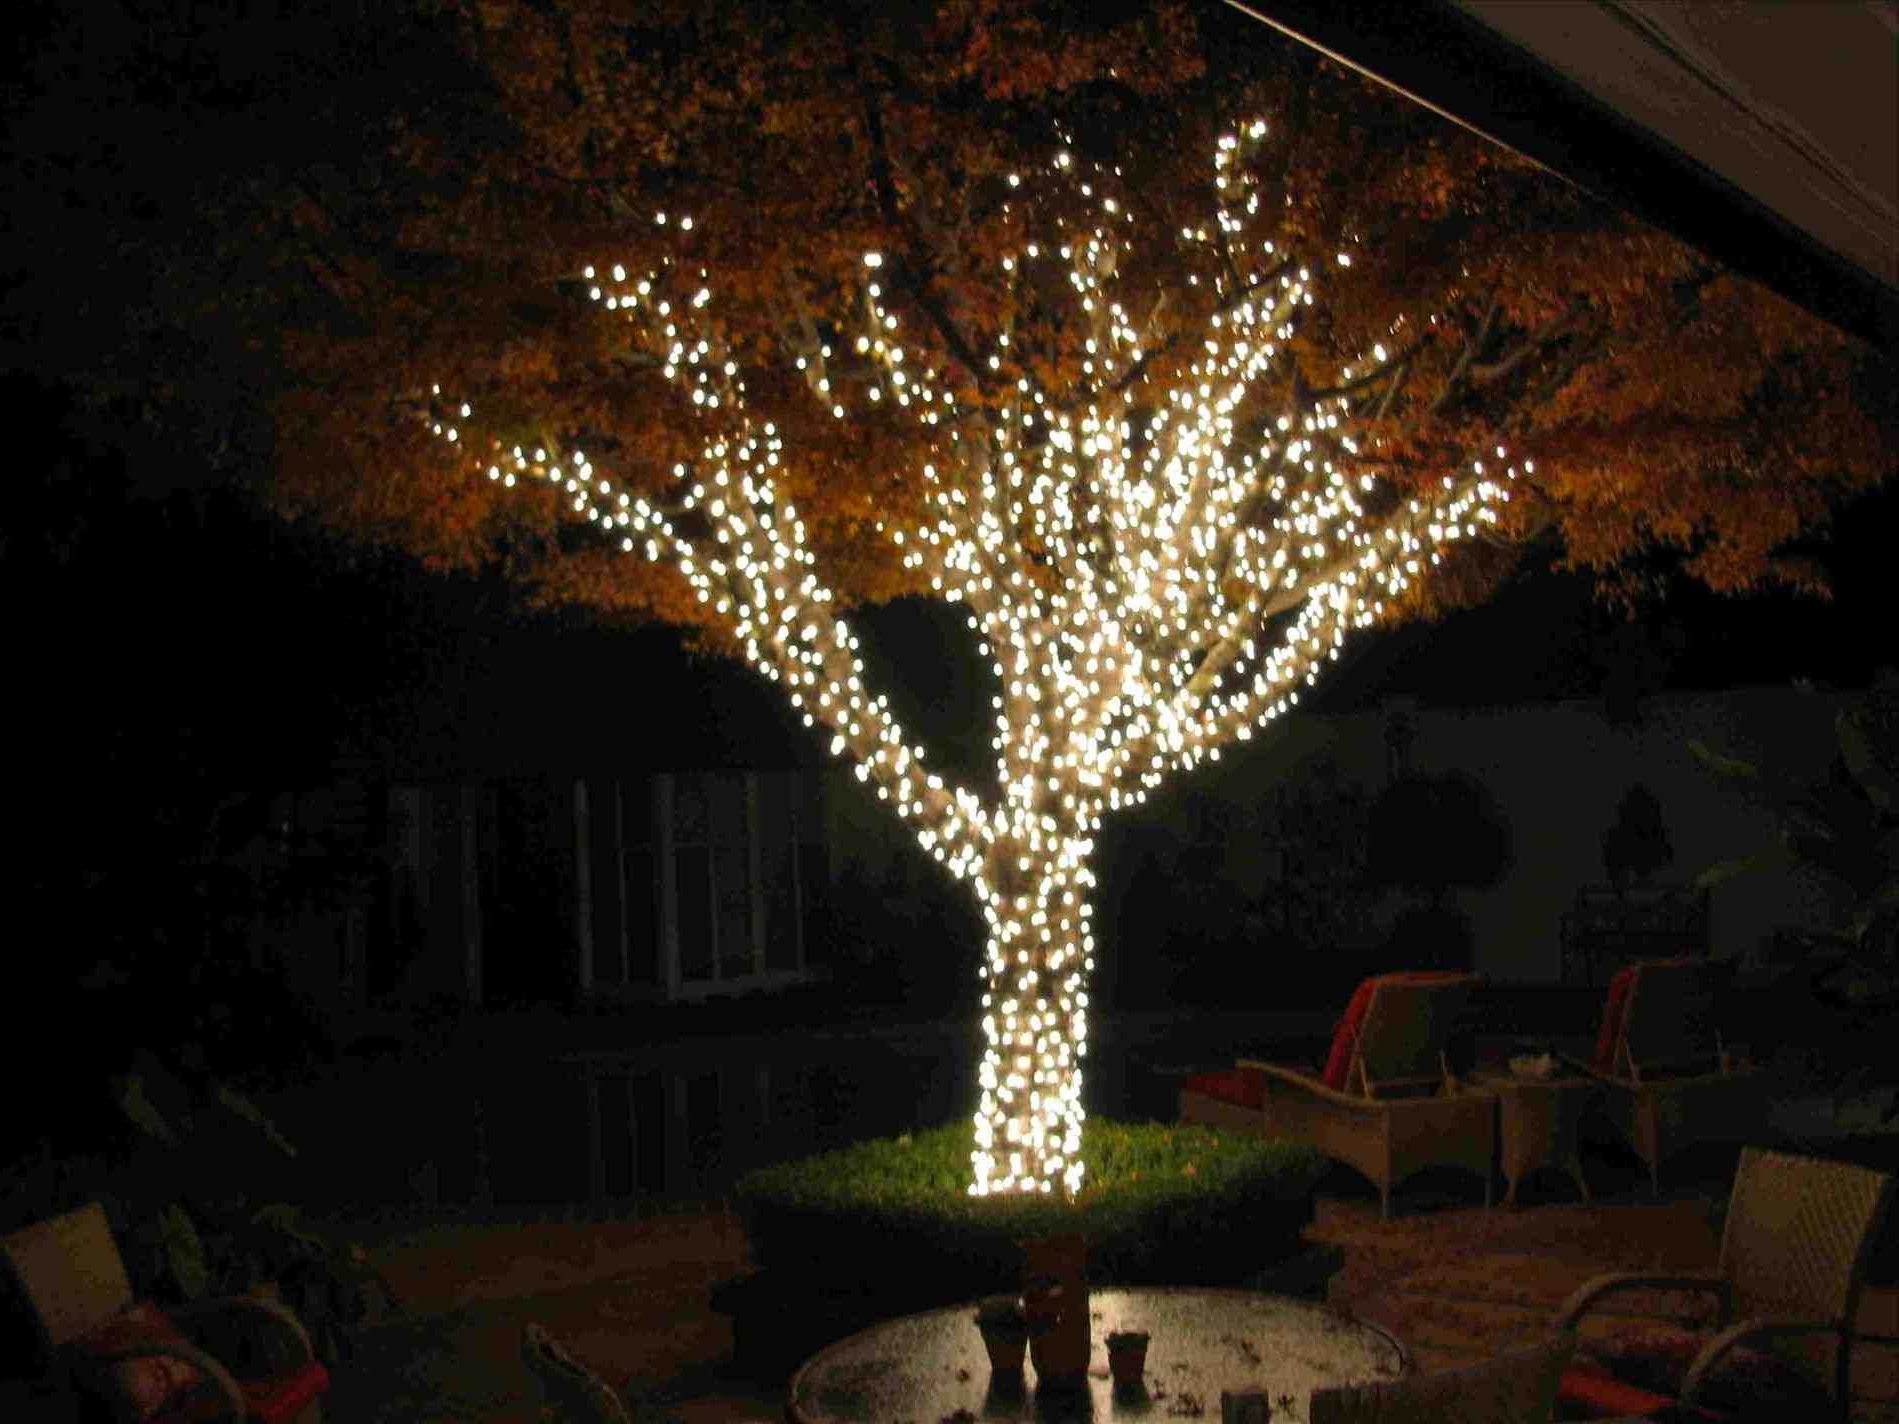 Hanging Lights On An Outdoor Tree Intended For Well Liked Backyard Tree Lighting Ideas – Homedesignlatest (View 11 of 20)